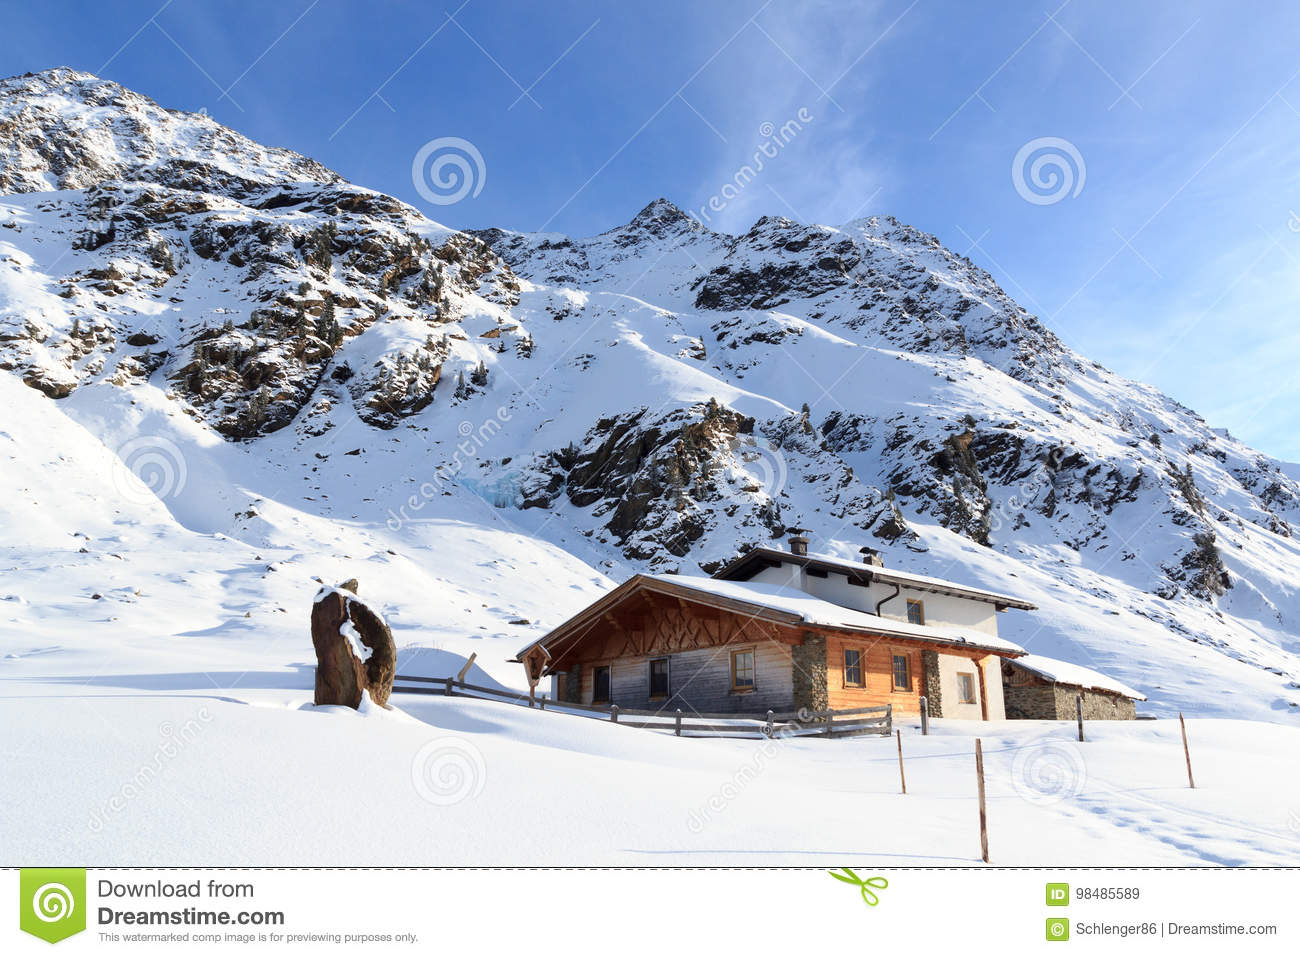 Download Alpine Chalet House And Mountain Panorama With Snow In Winter In Stubai Alps Stock Image - Image of mountains, mountaineering: 98485589